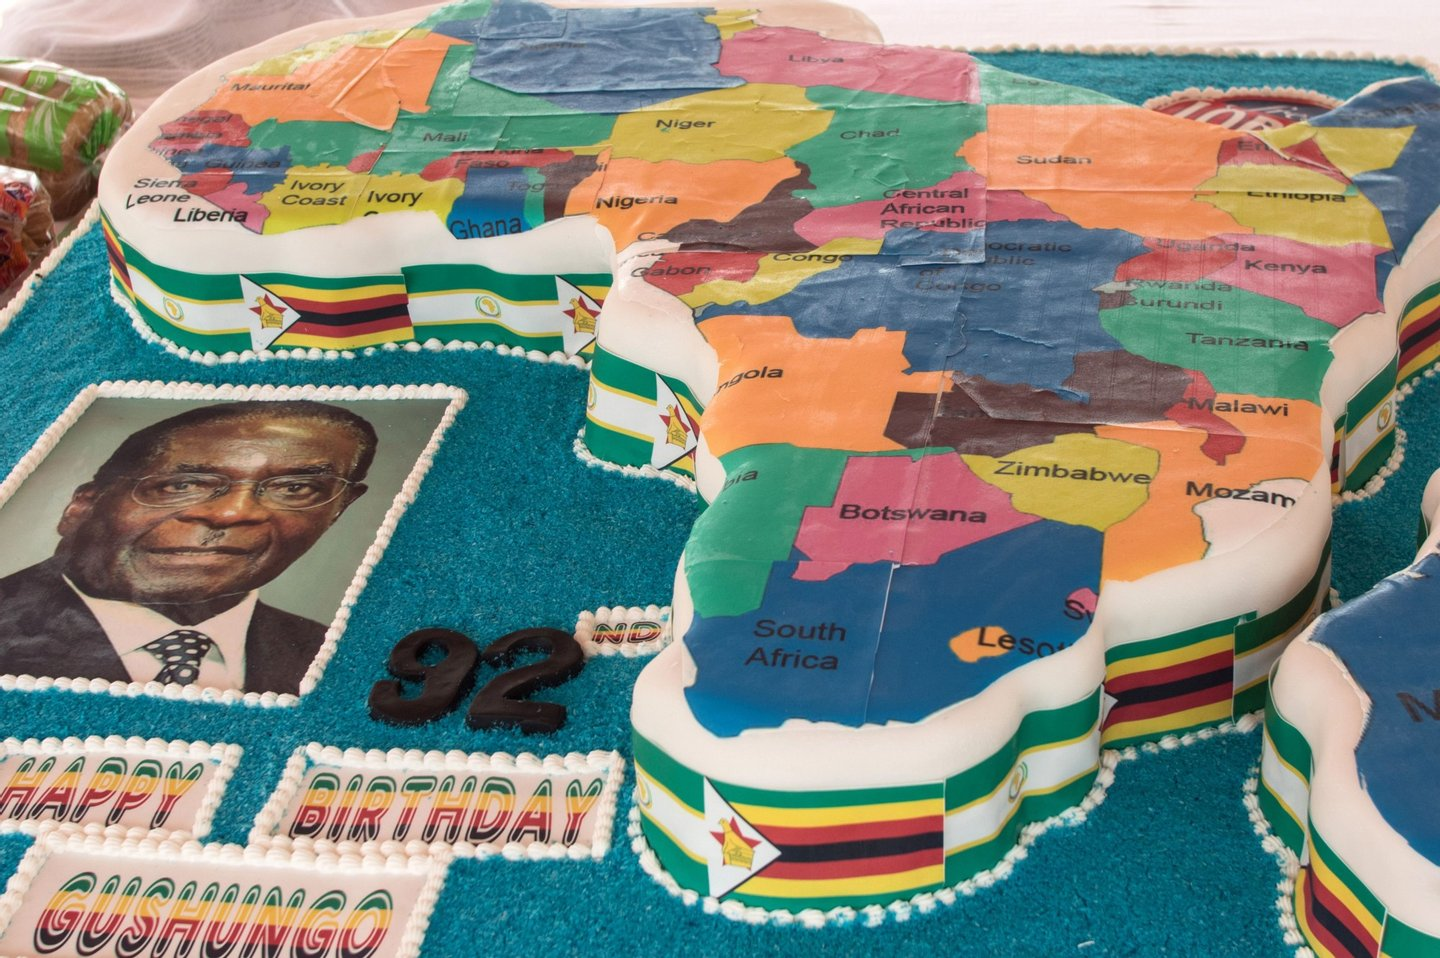 A picture shows Zimbabwean President Robert Mugabe's birthday cake in the shape of the map of Africa during celebrations marking his birthday at the Great Zimbabwe monument in Masvingo on February 27, 2016. / AFP / JEKESAI NJIKIZANA (Photo credit should read JEKESAI NJIKIZANA/AFP/Getty Images)